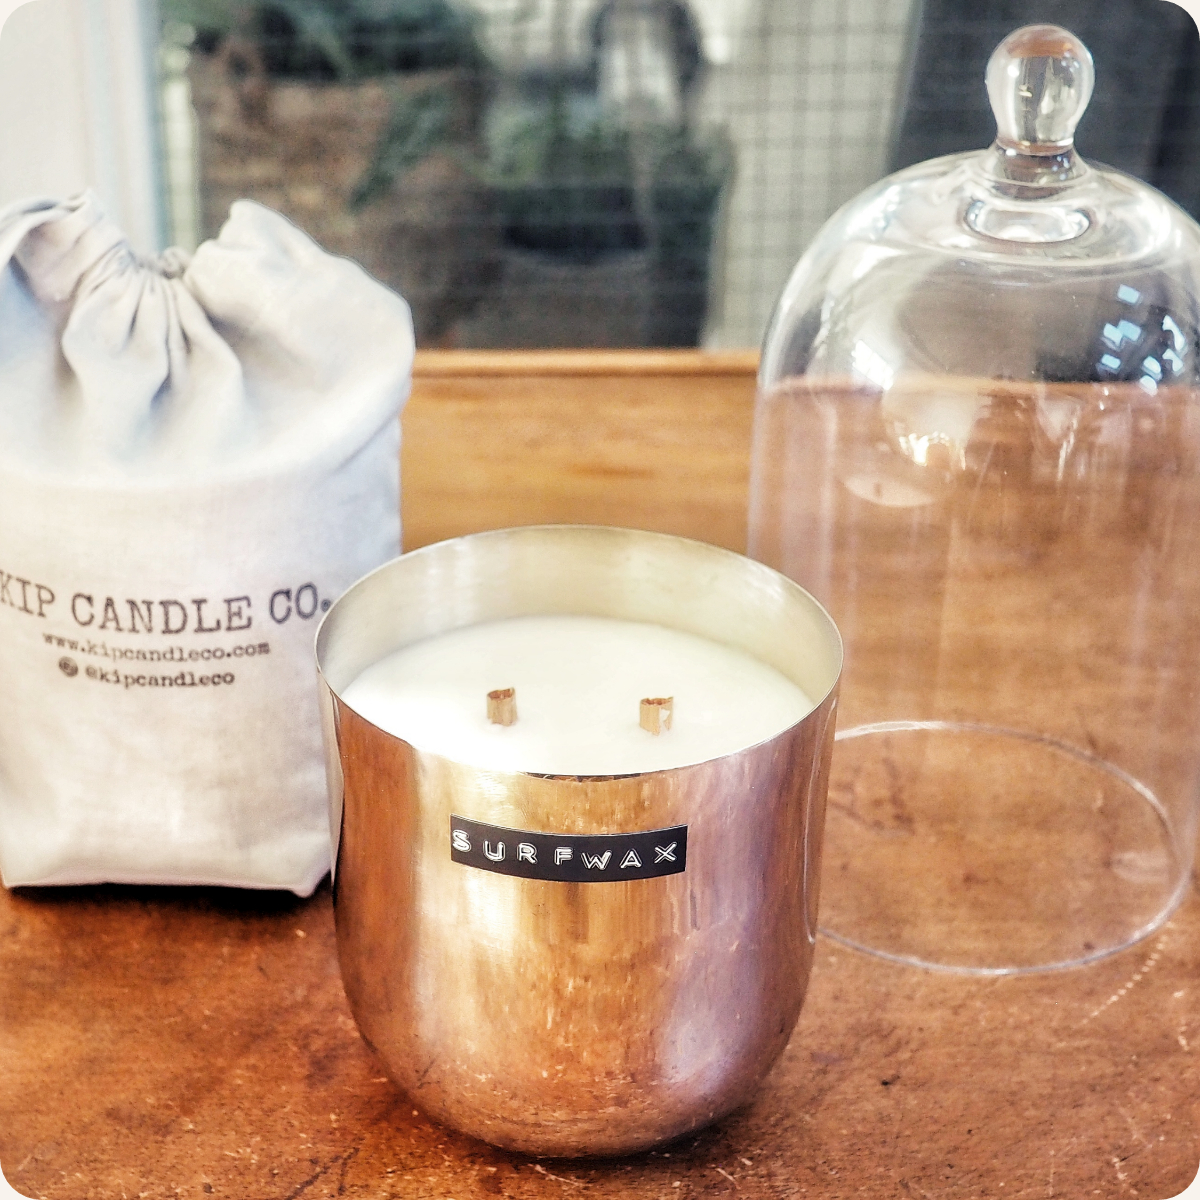 Surfwax Original Silver Candle & Bell Jar Bundle.